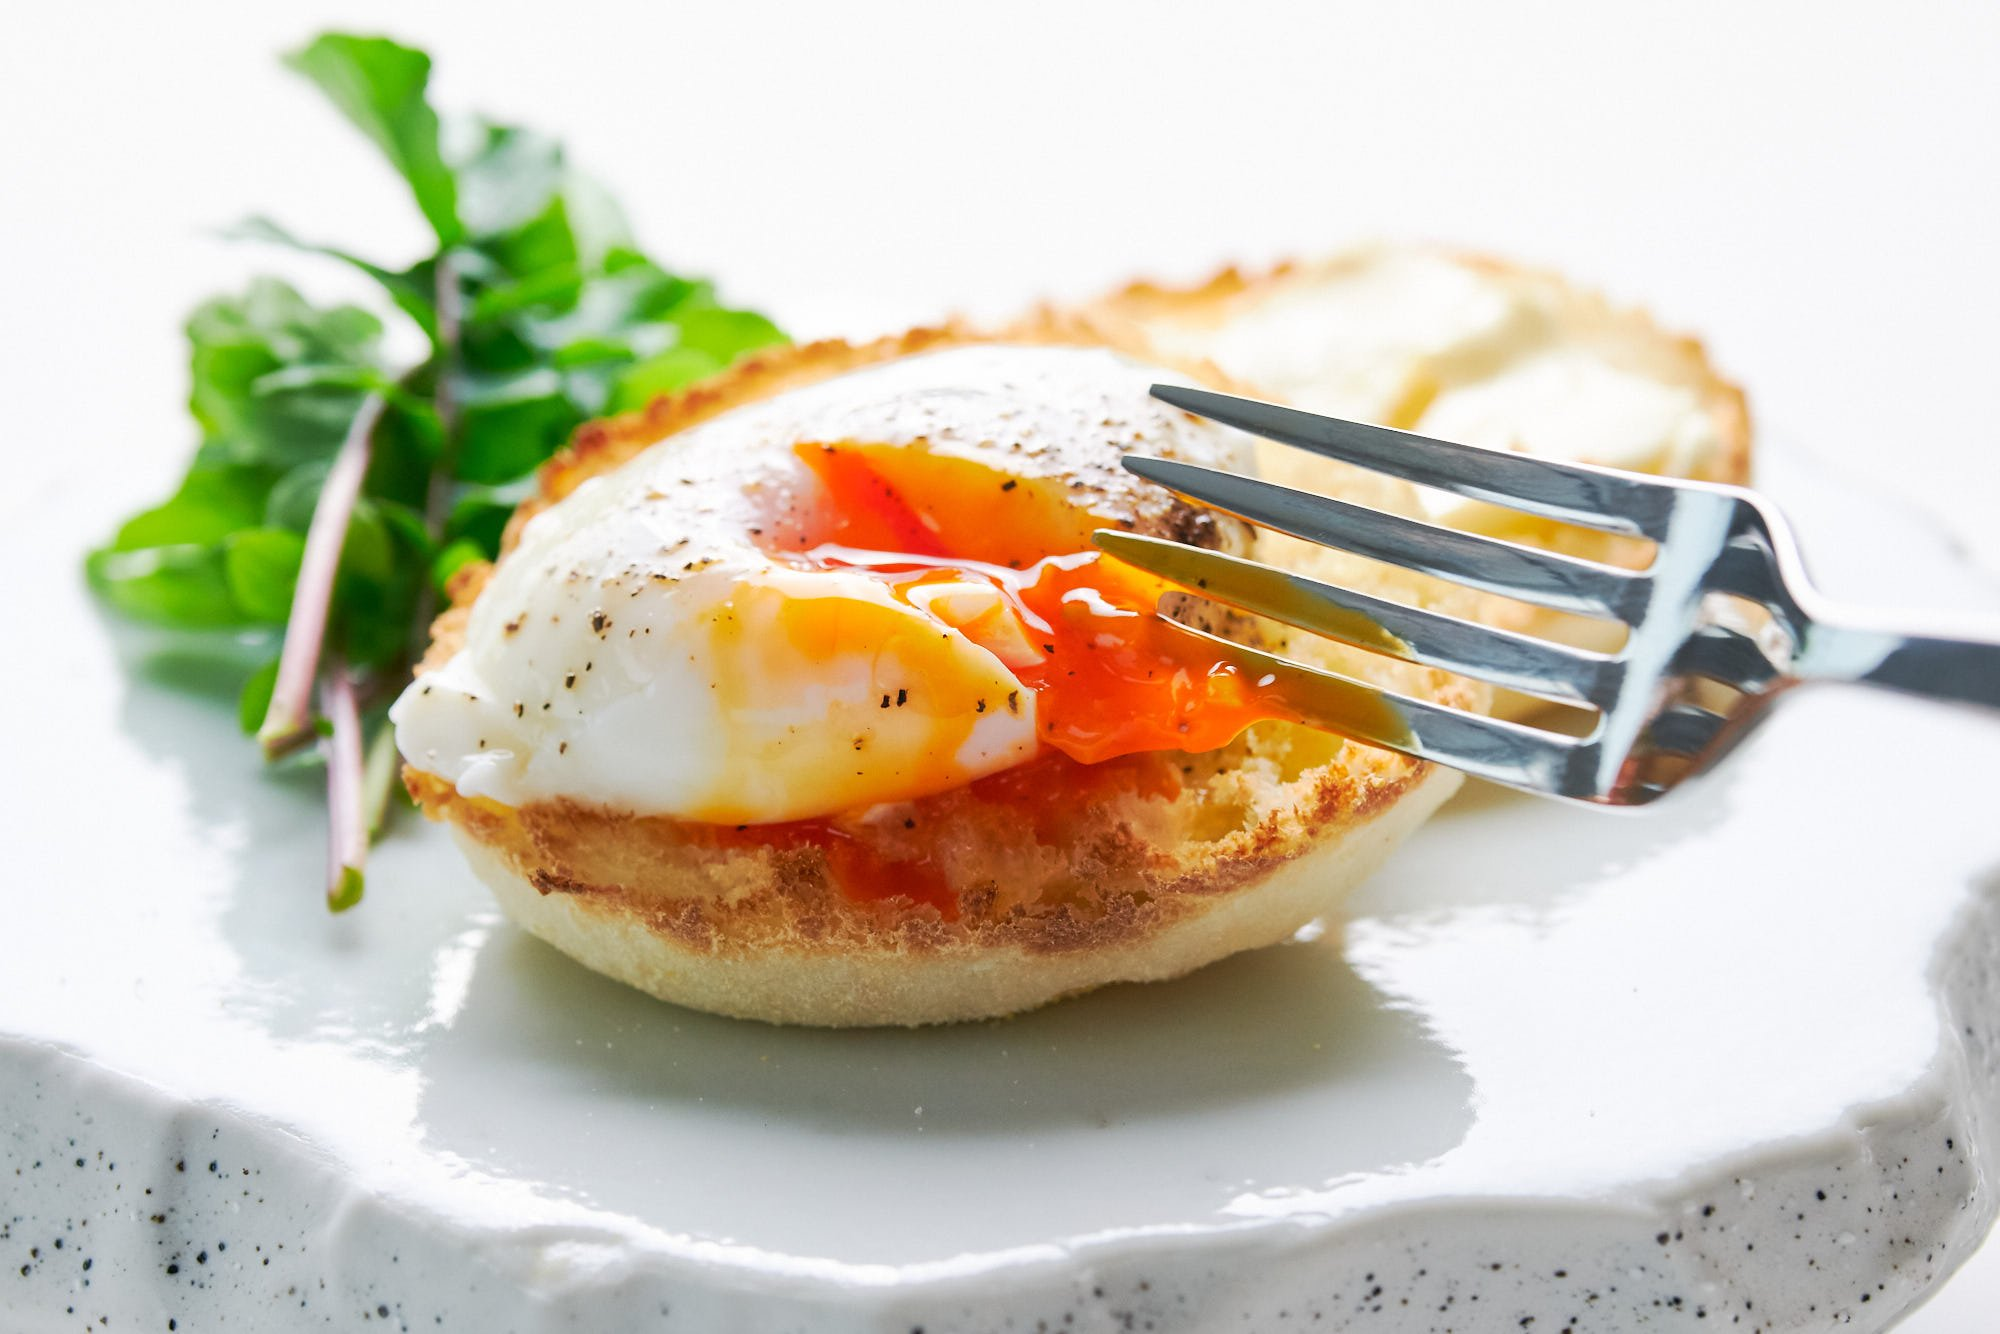 Breaking the yolk of a perfectly poached egg with a fork.